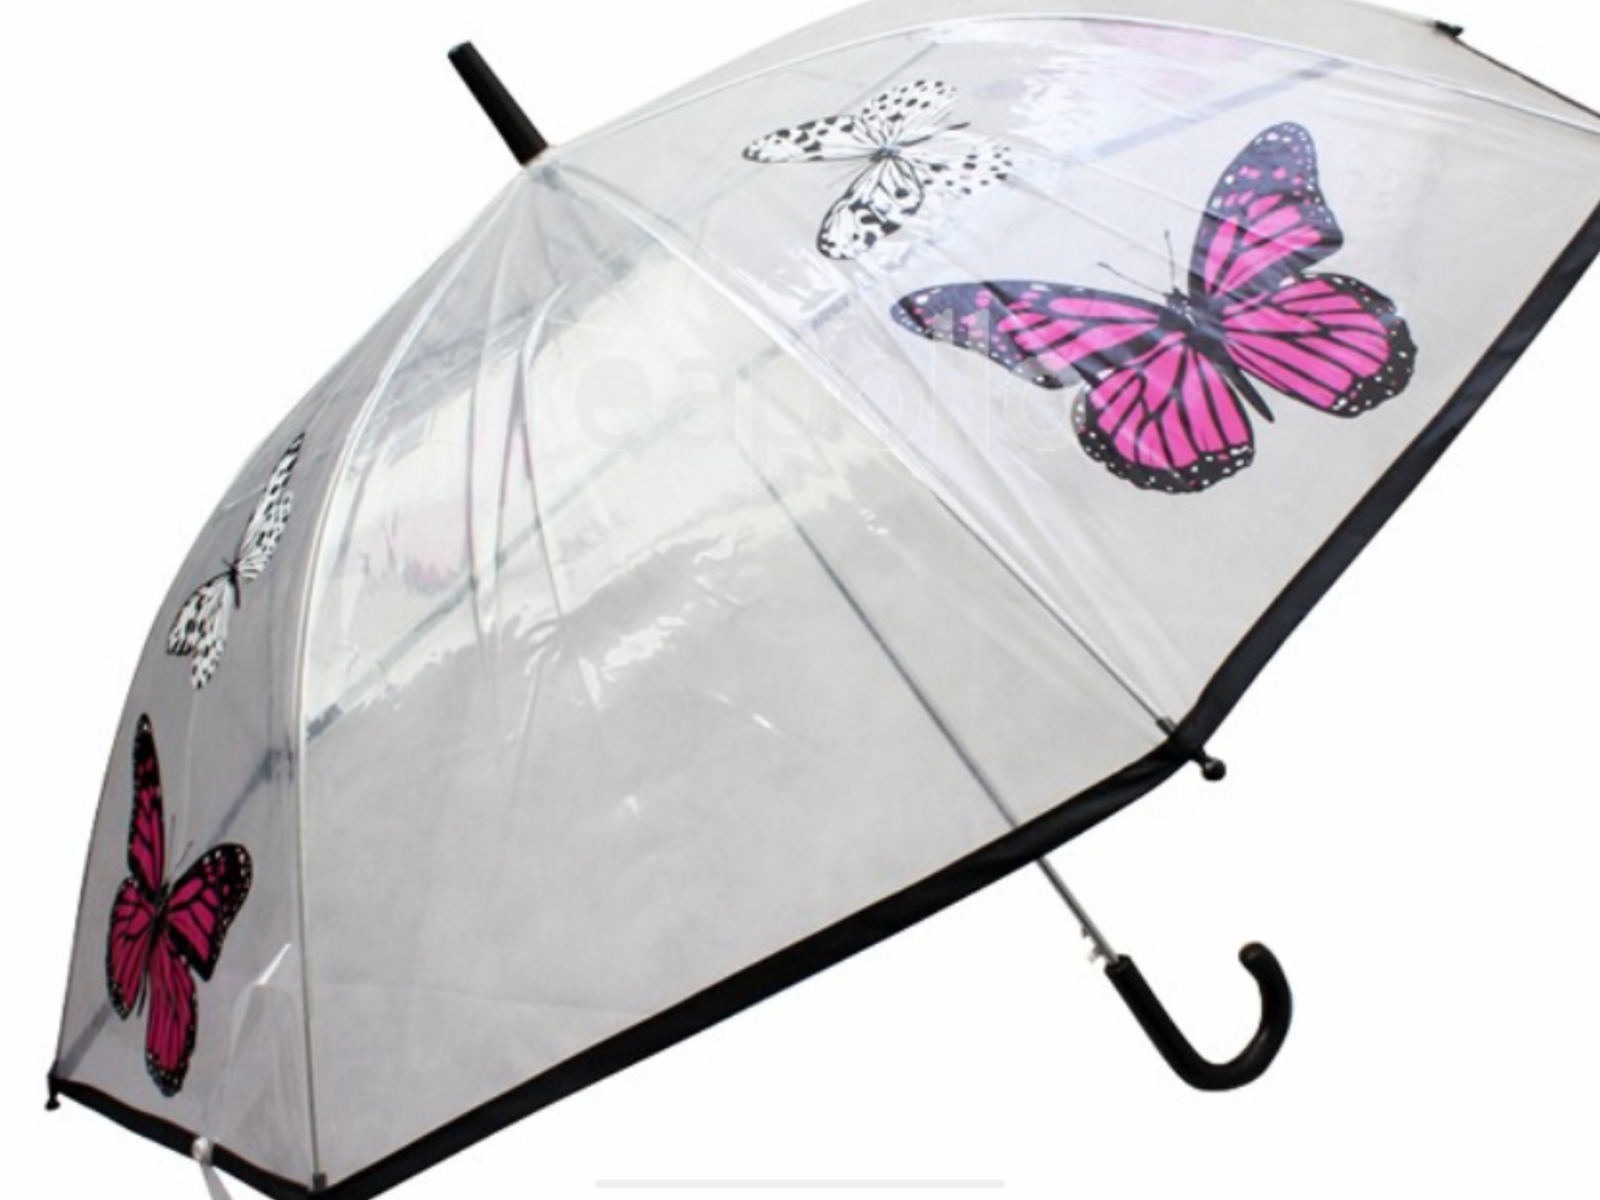 Butterfly large dome print umbrella brolly rainy day shopping car present gift